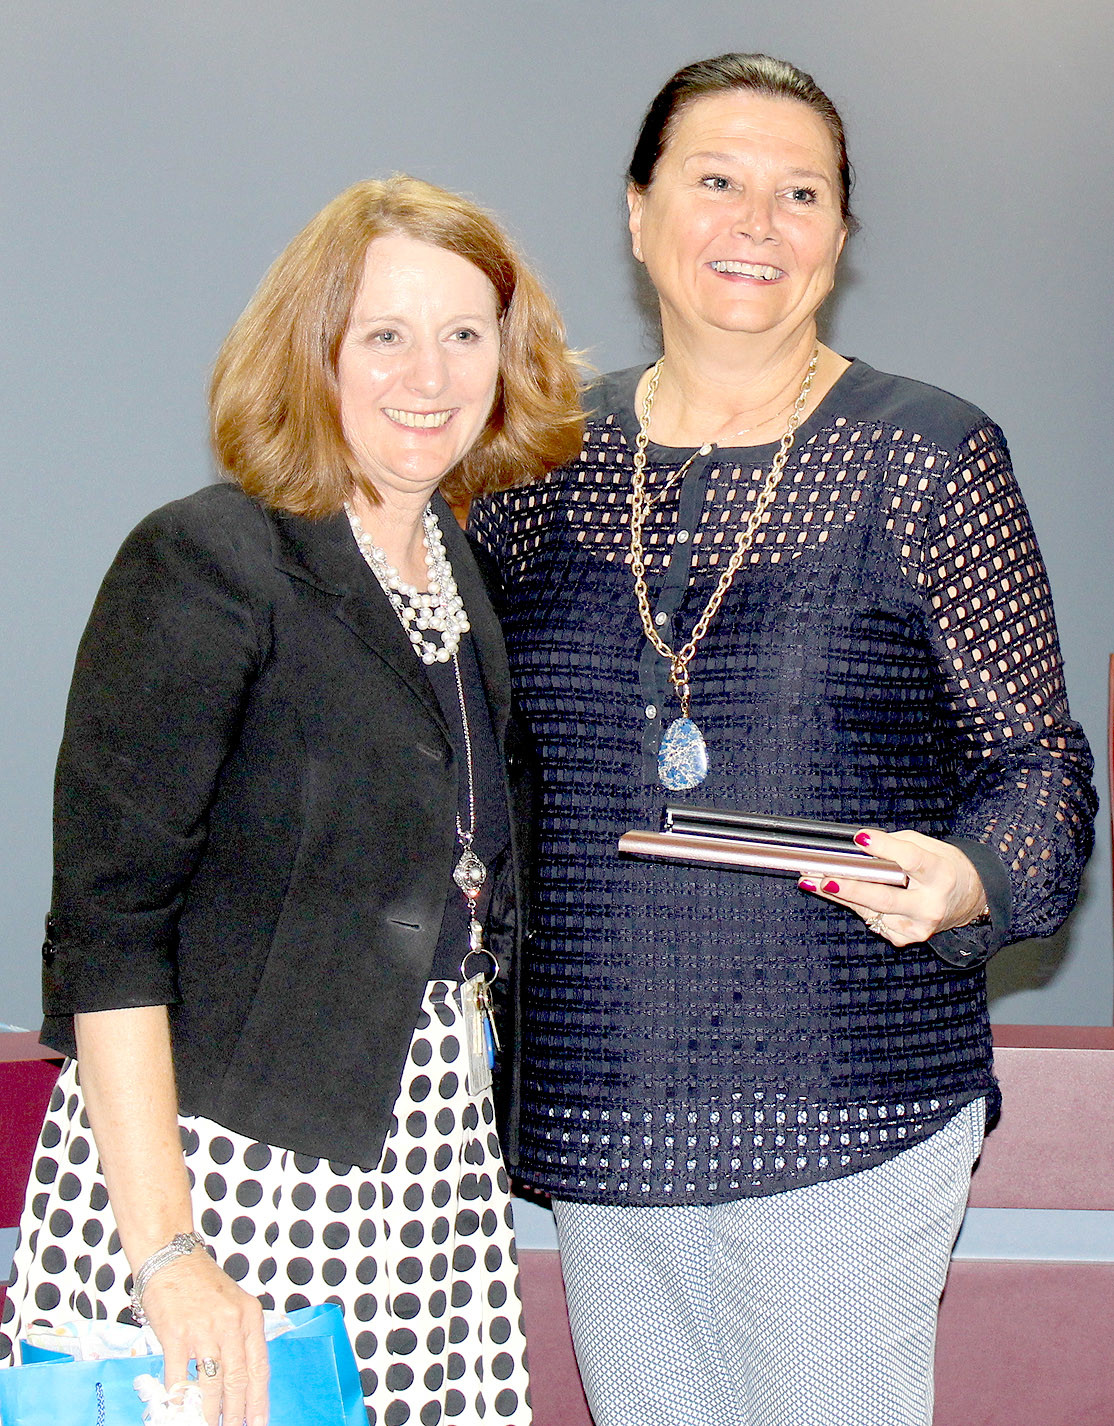 FOURTH DISTRICT Bradley County Board of Education member Dianna Calfee, right, is thanked by Director of Schools Dr. Linda Cash during Thursday's board meeting. It was her final meeting following her loss in the Aug. 1 election.